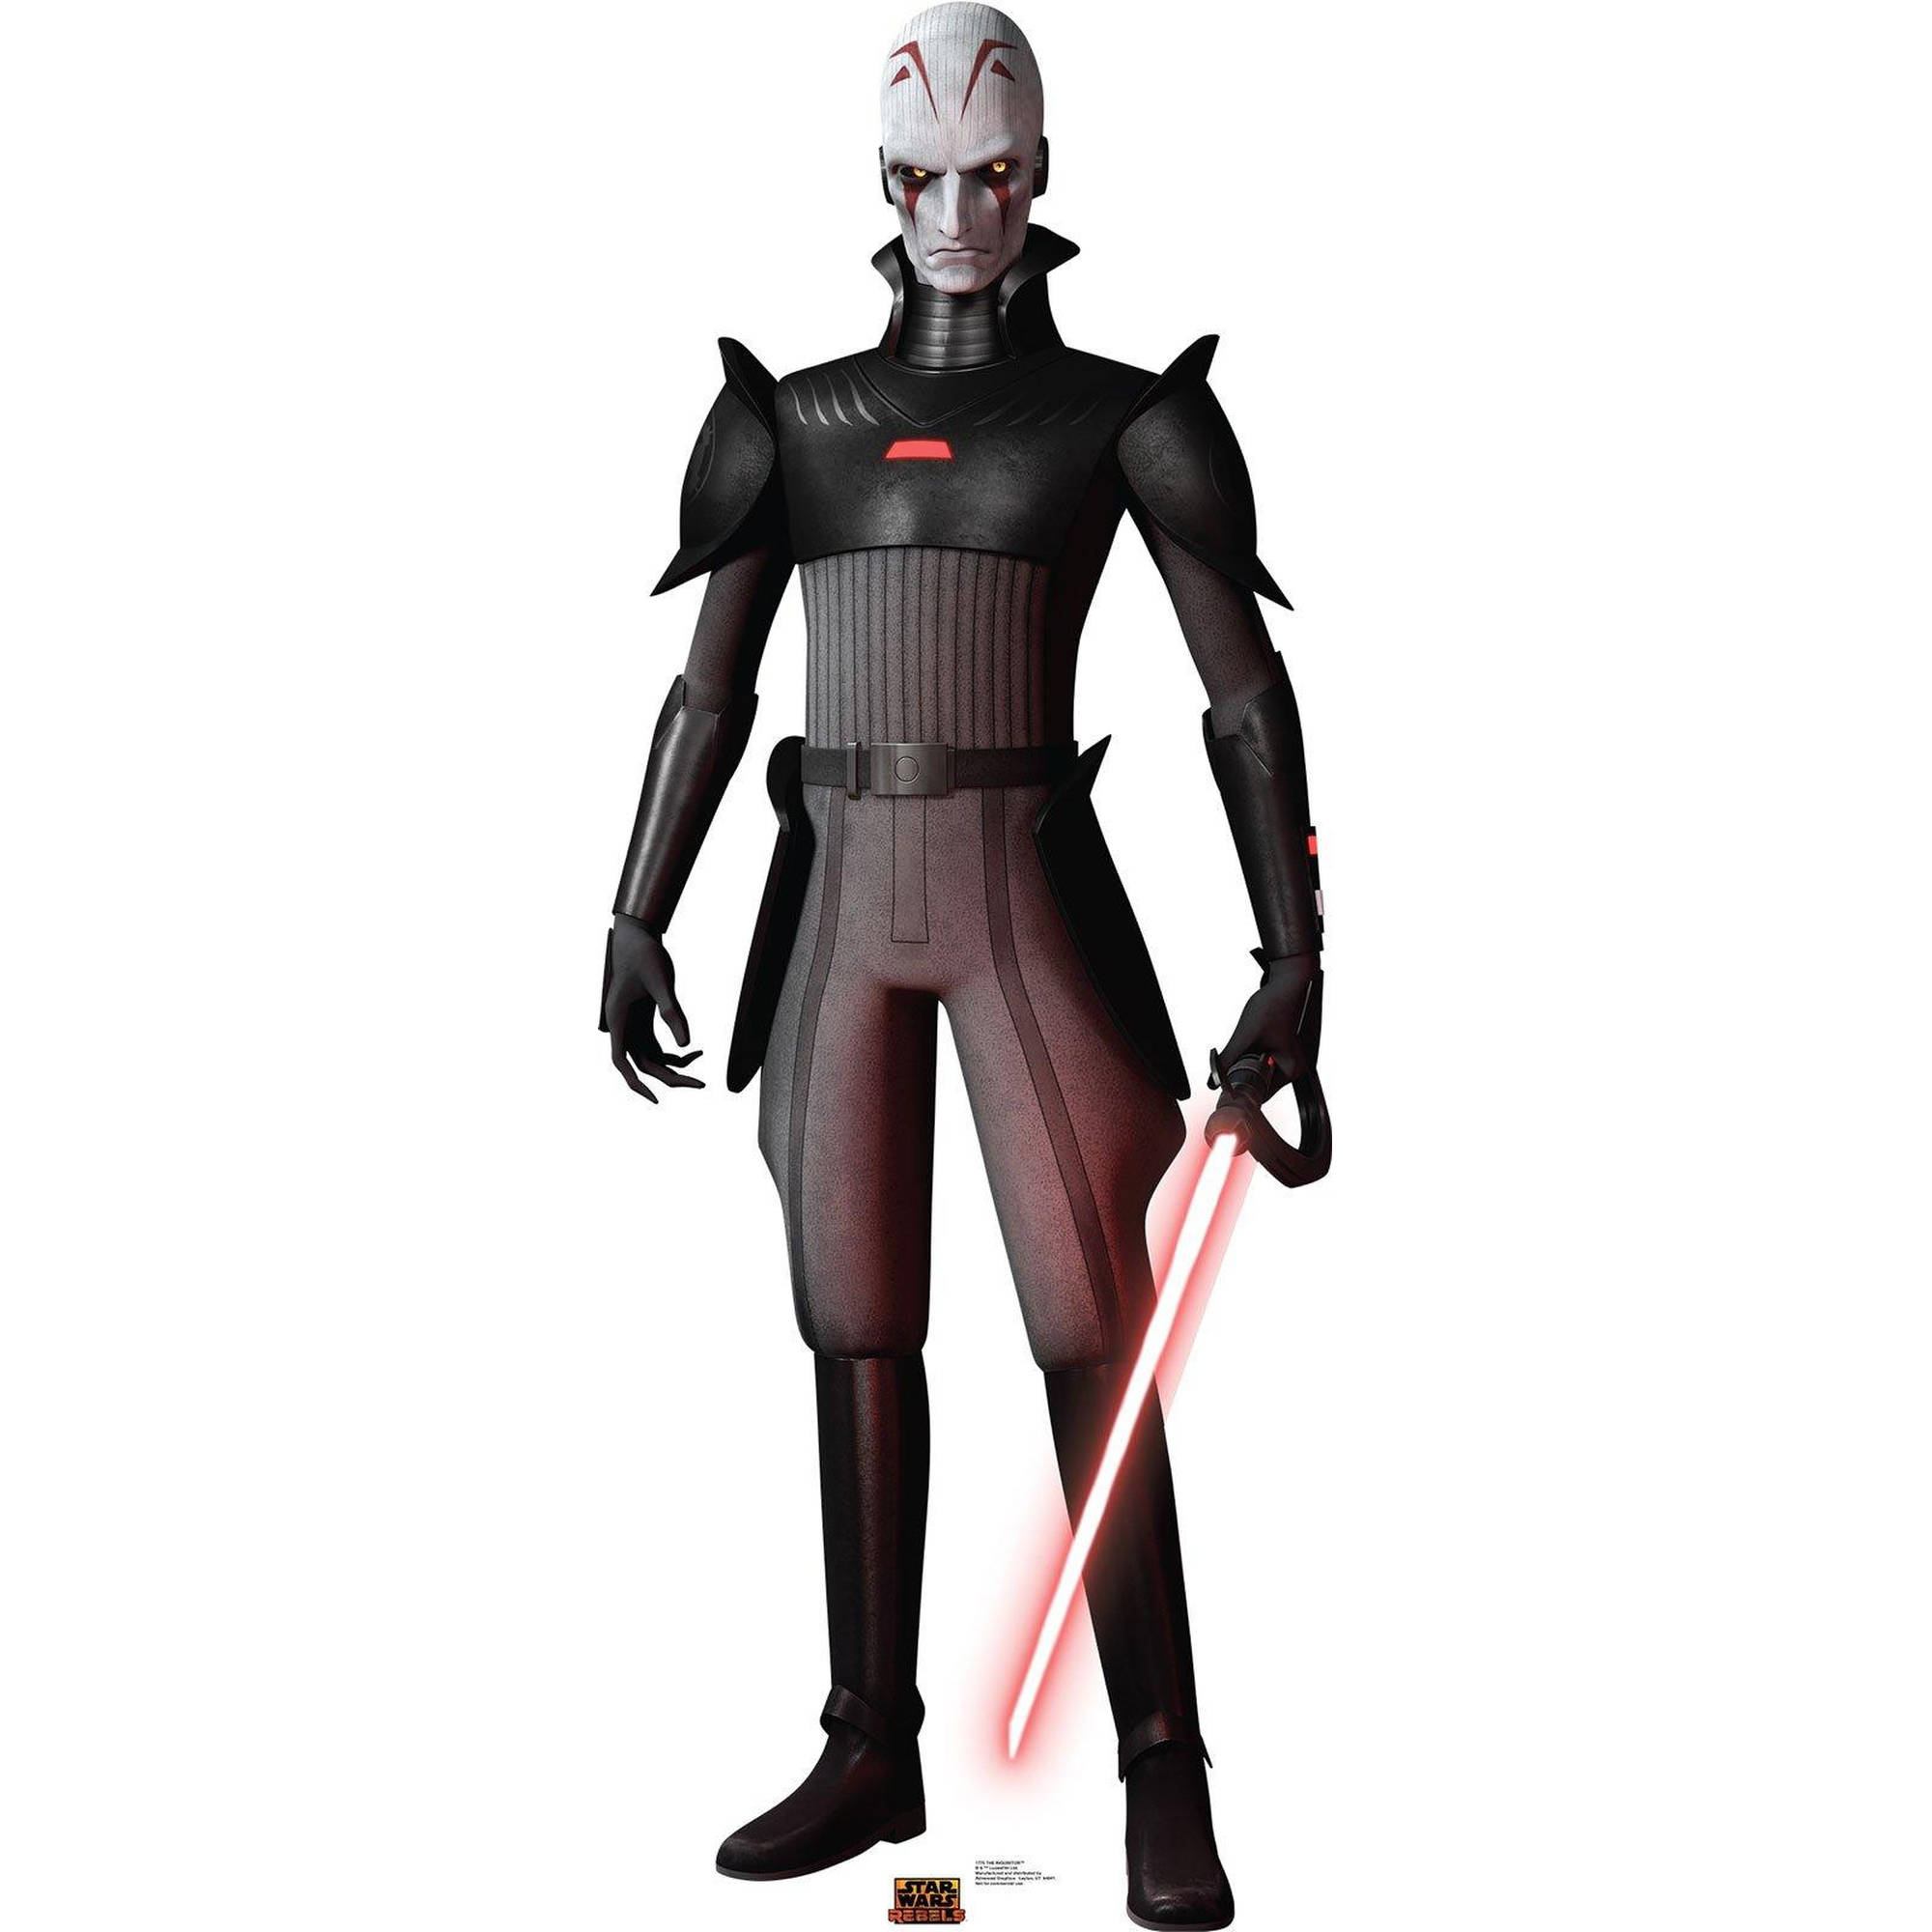 SWR The Grand Inquisitor Cardboard Standee